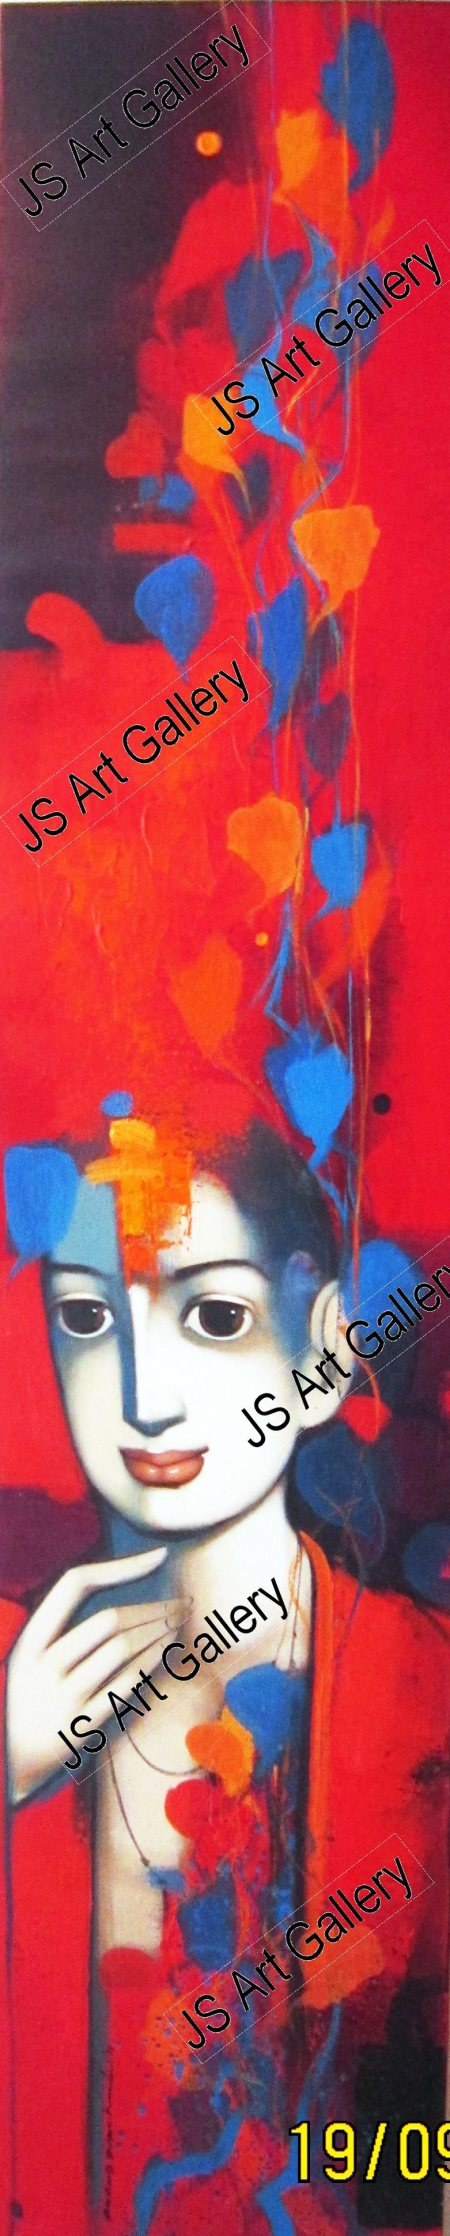 Beauty, boldness, brightness and gorgeousness are some of the trademarks of Anand Panchal's works. Best known for his figurative artworks, Panchal has over the years developed an unique style of his own, mostly paints Brahmins, and children - by JS Art, Mumbai Suburban